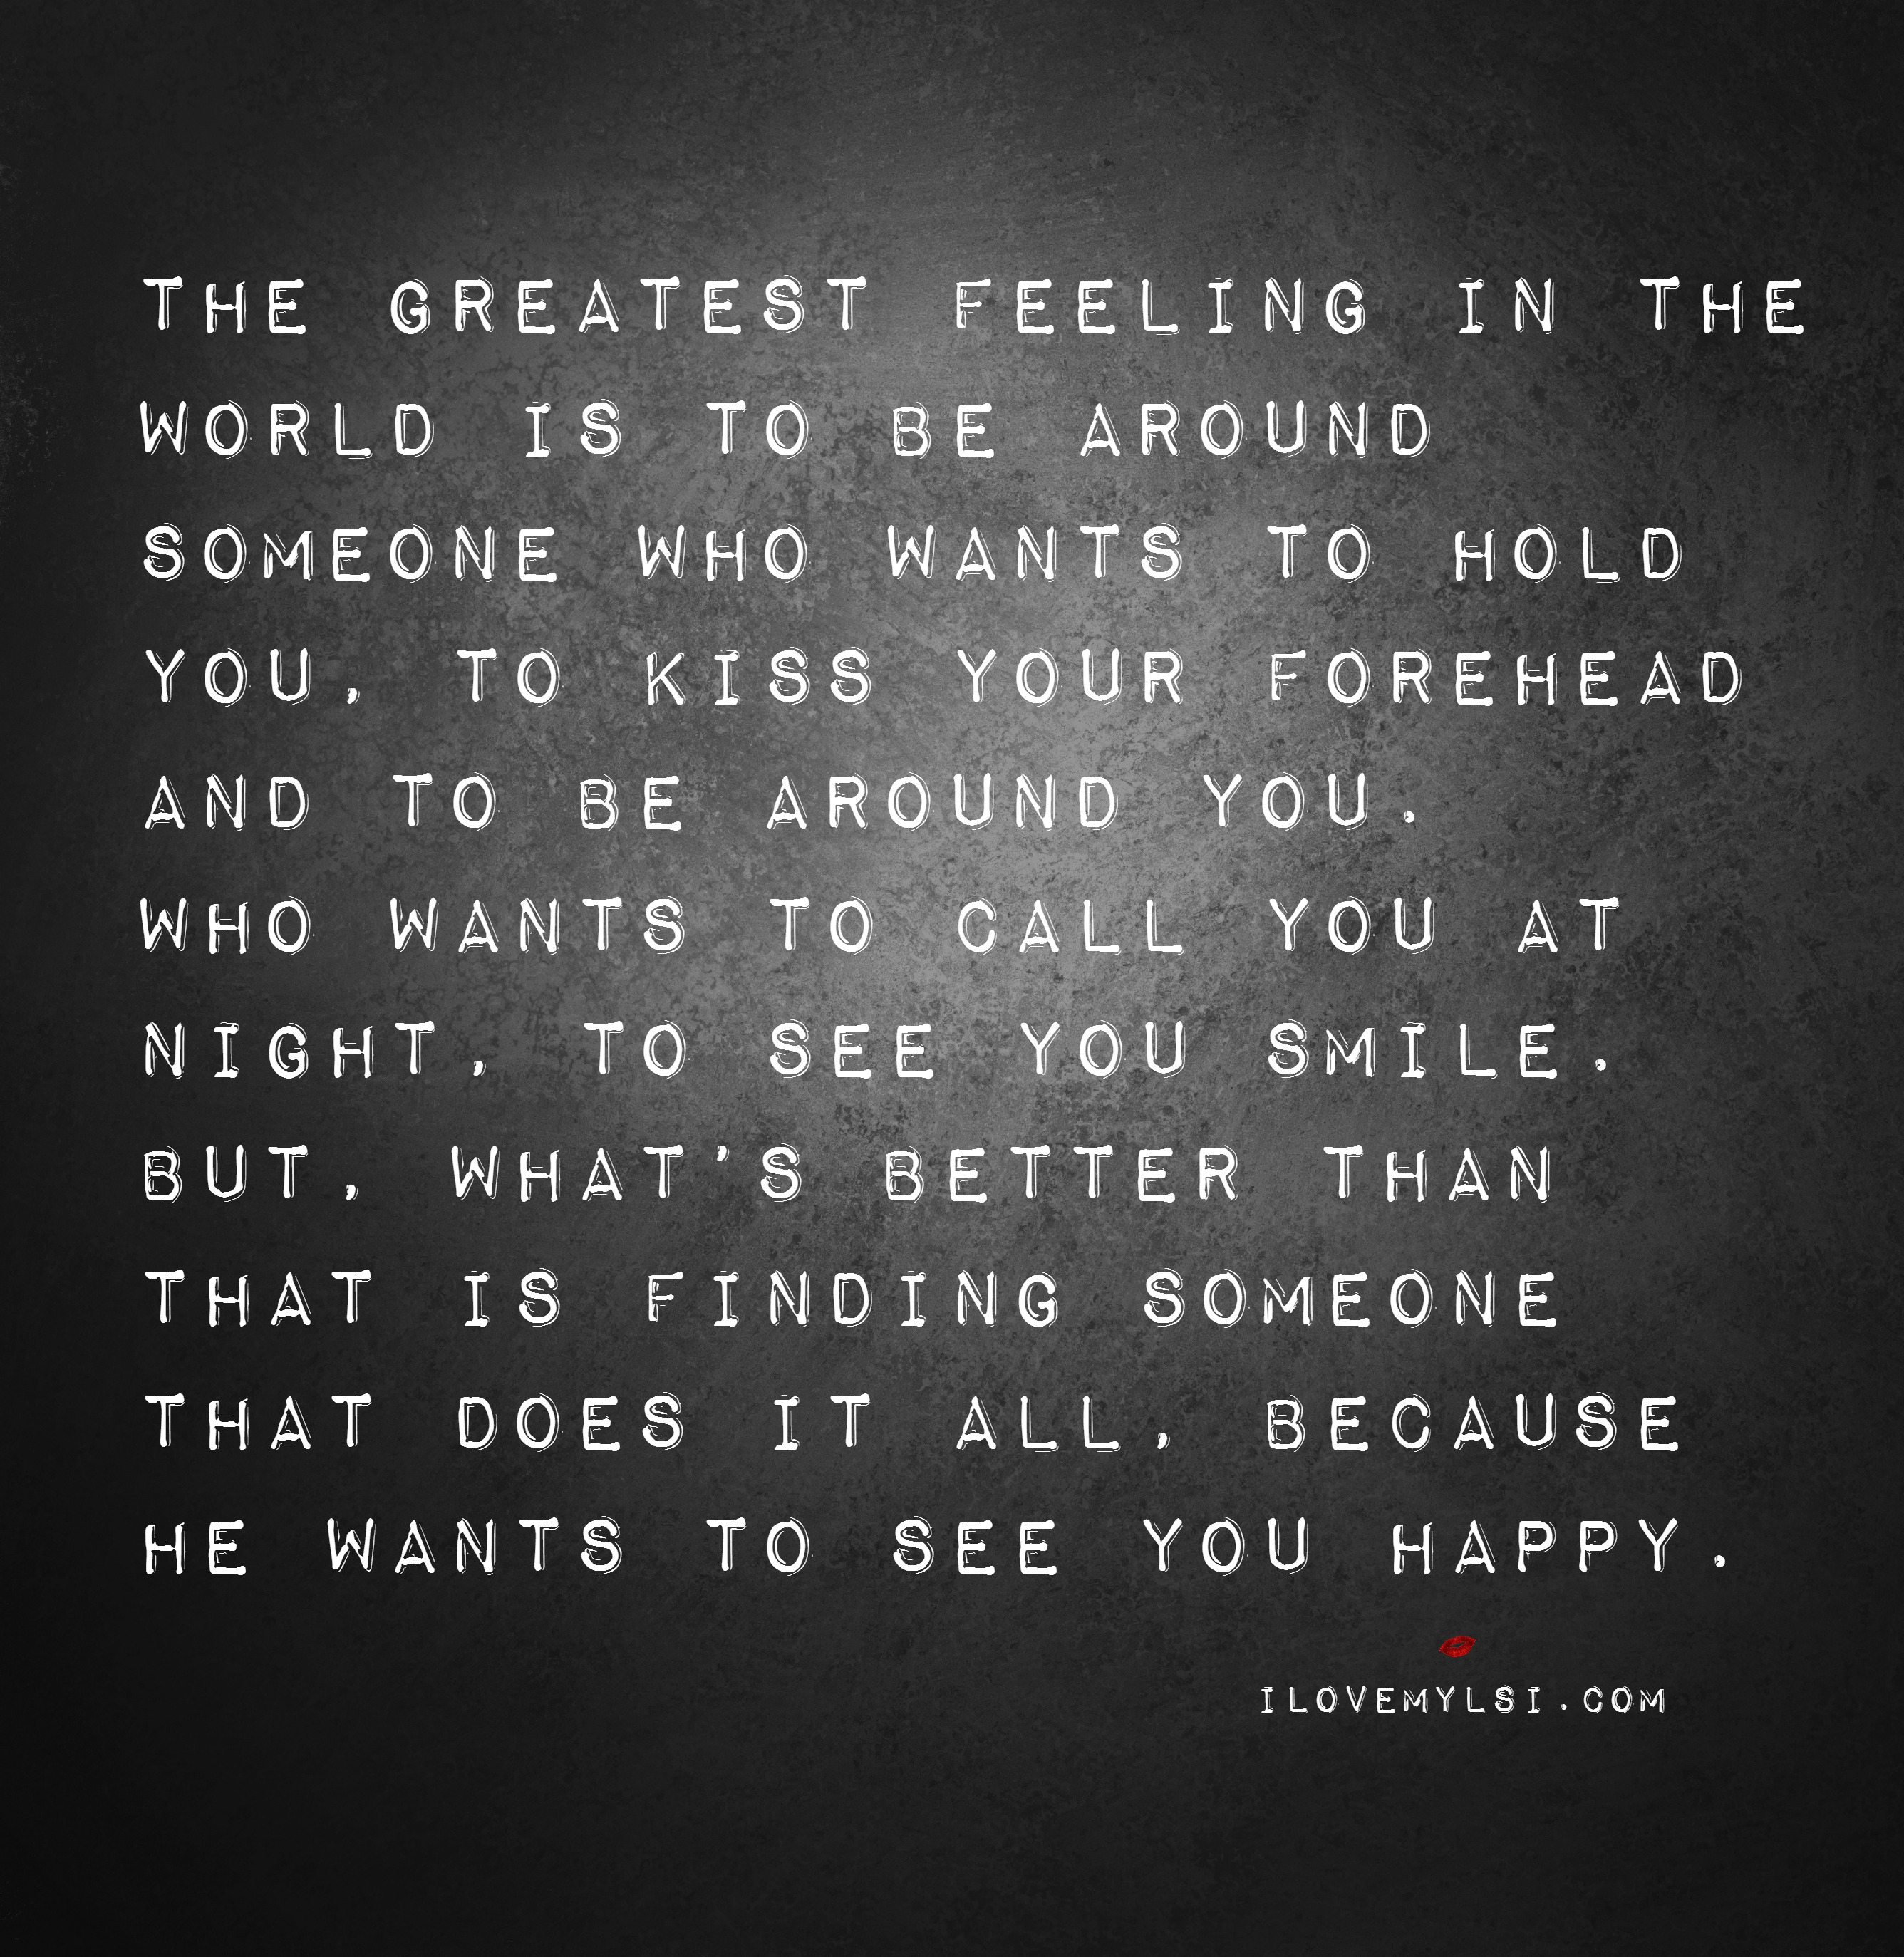 Forehead Kiss Love Quotes : ... who wants to hold you, to kiss your forehead and to be around you